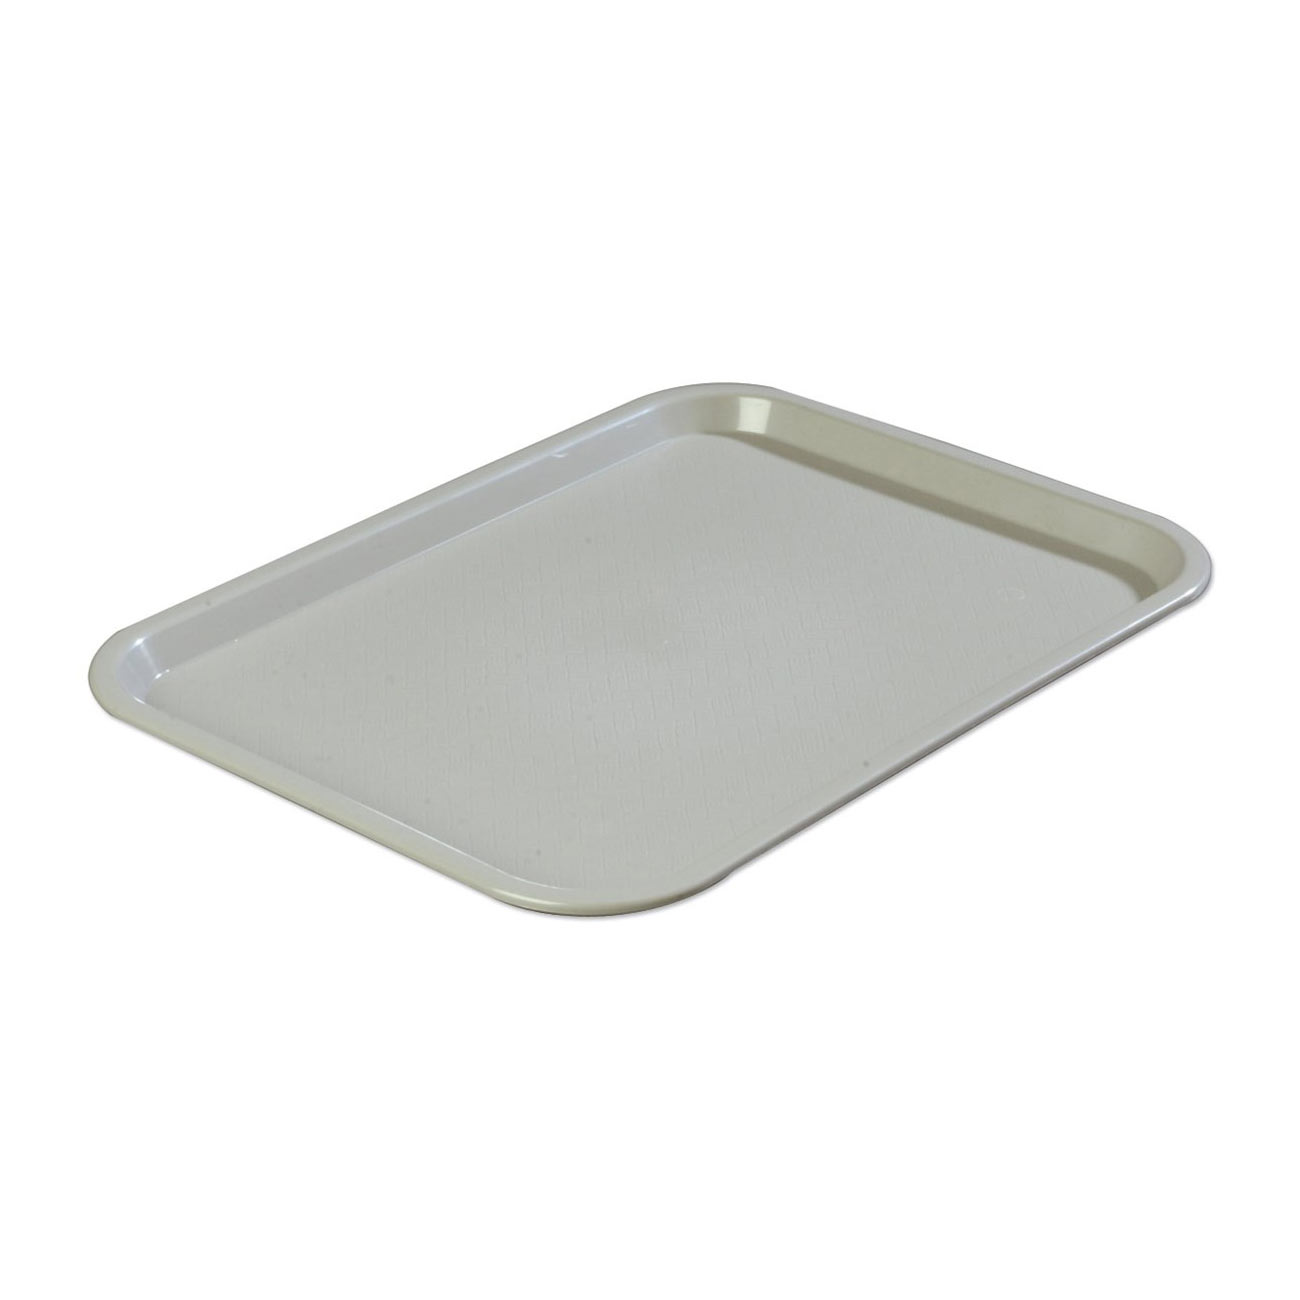 Cafeteria Tray - Grey - 14-in x 18-in